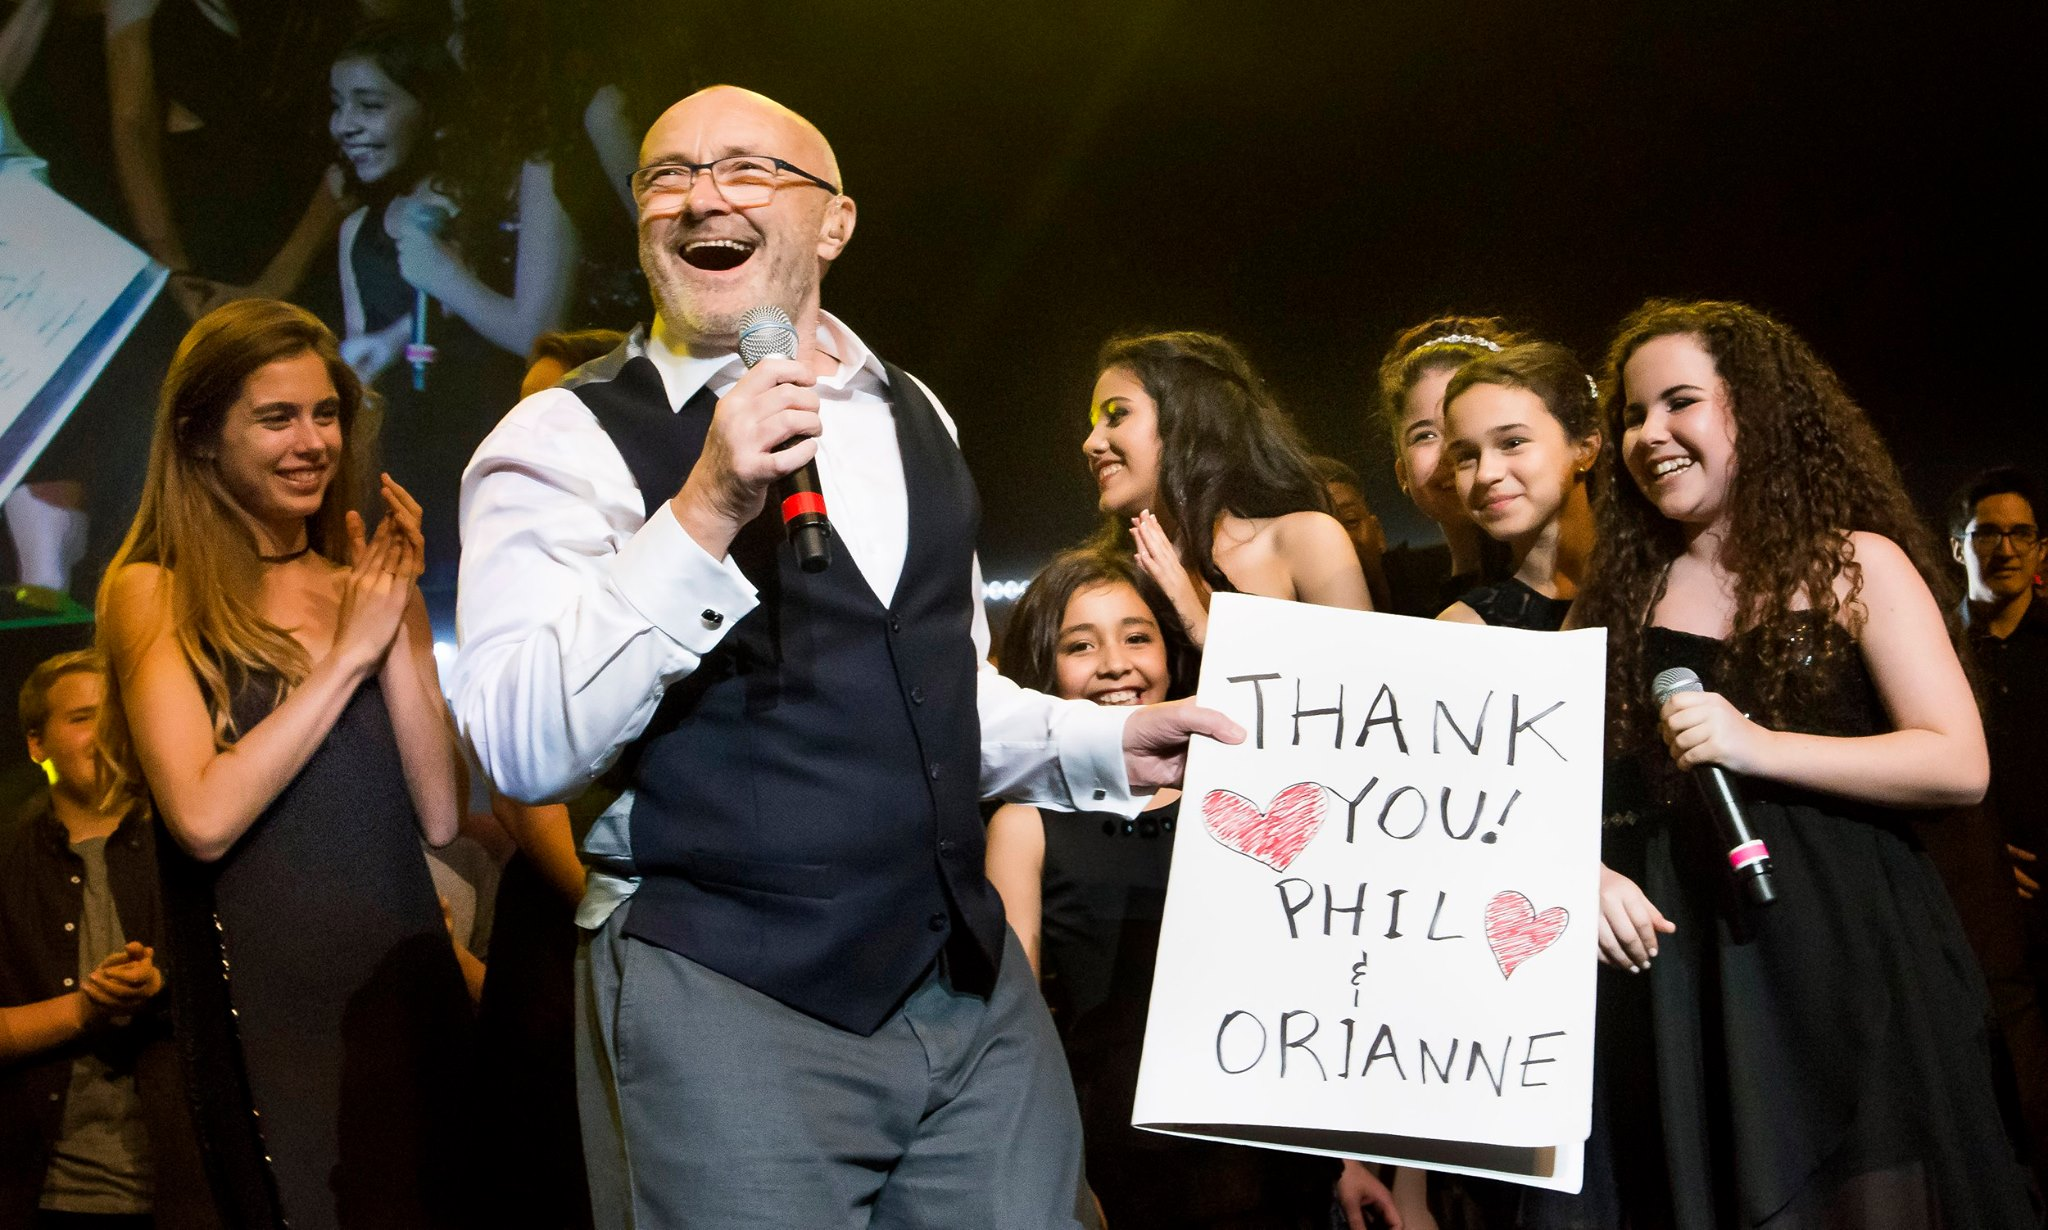 Phil Collins with with the talented young performers. Photo: Magical Photos/Mitchell Zachs